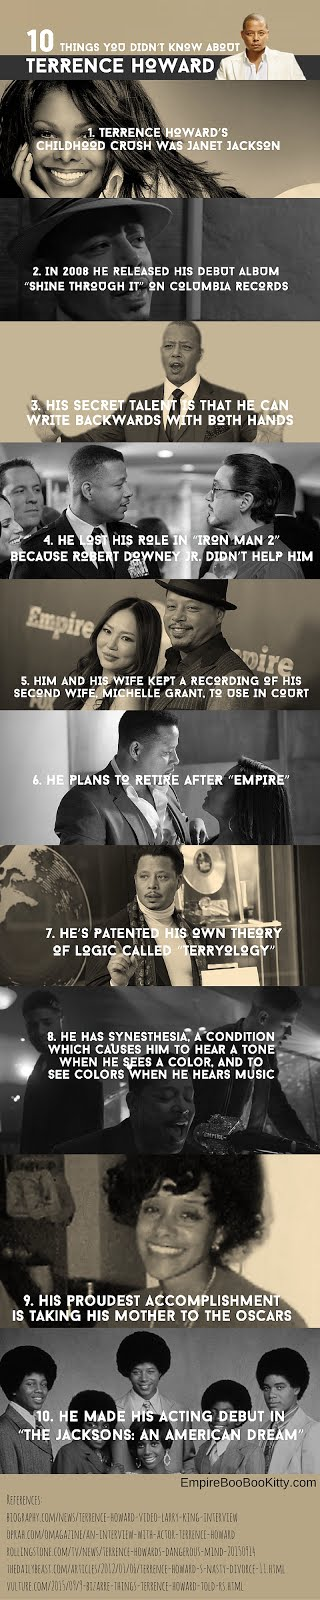 Terrence Howard Infographic